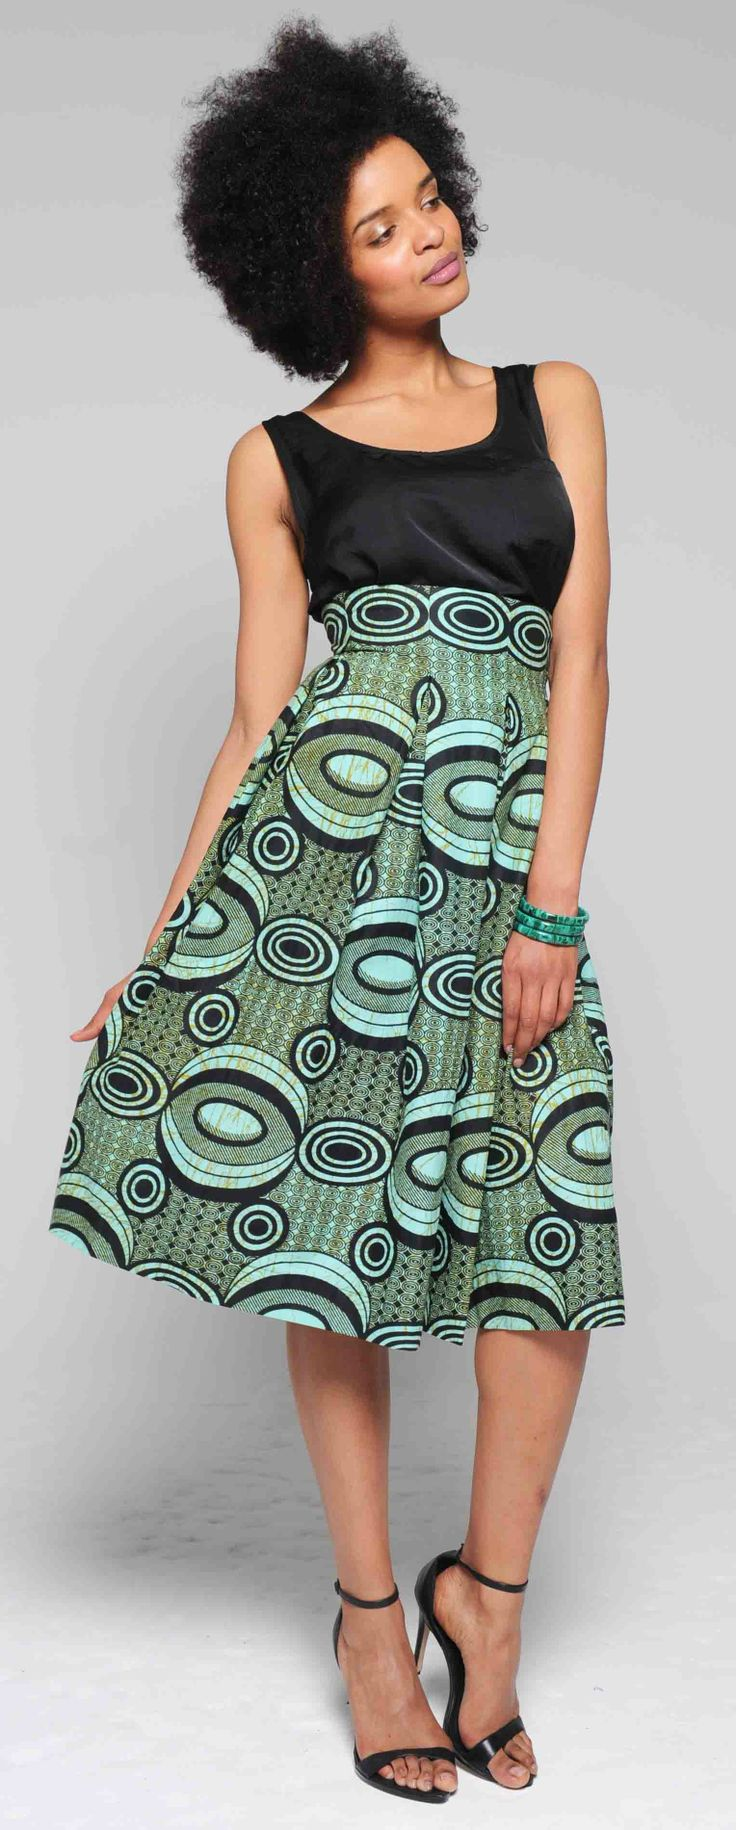 Modern African Clothing Pictures To Pin On Pinterest